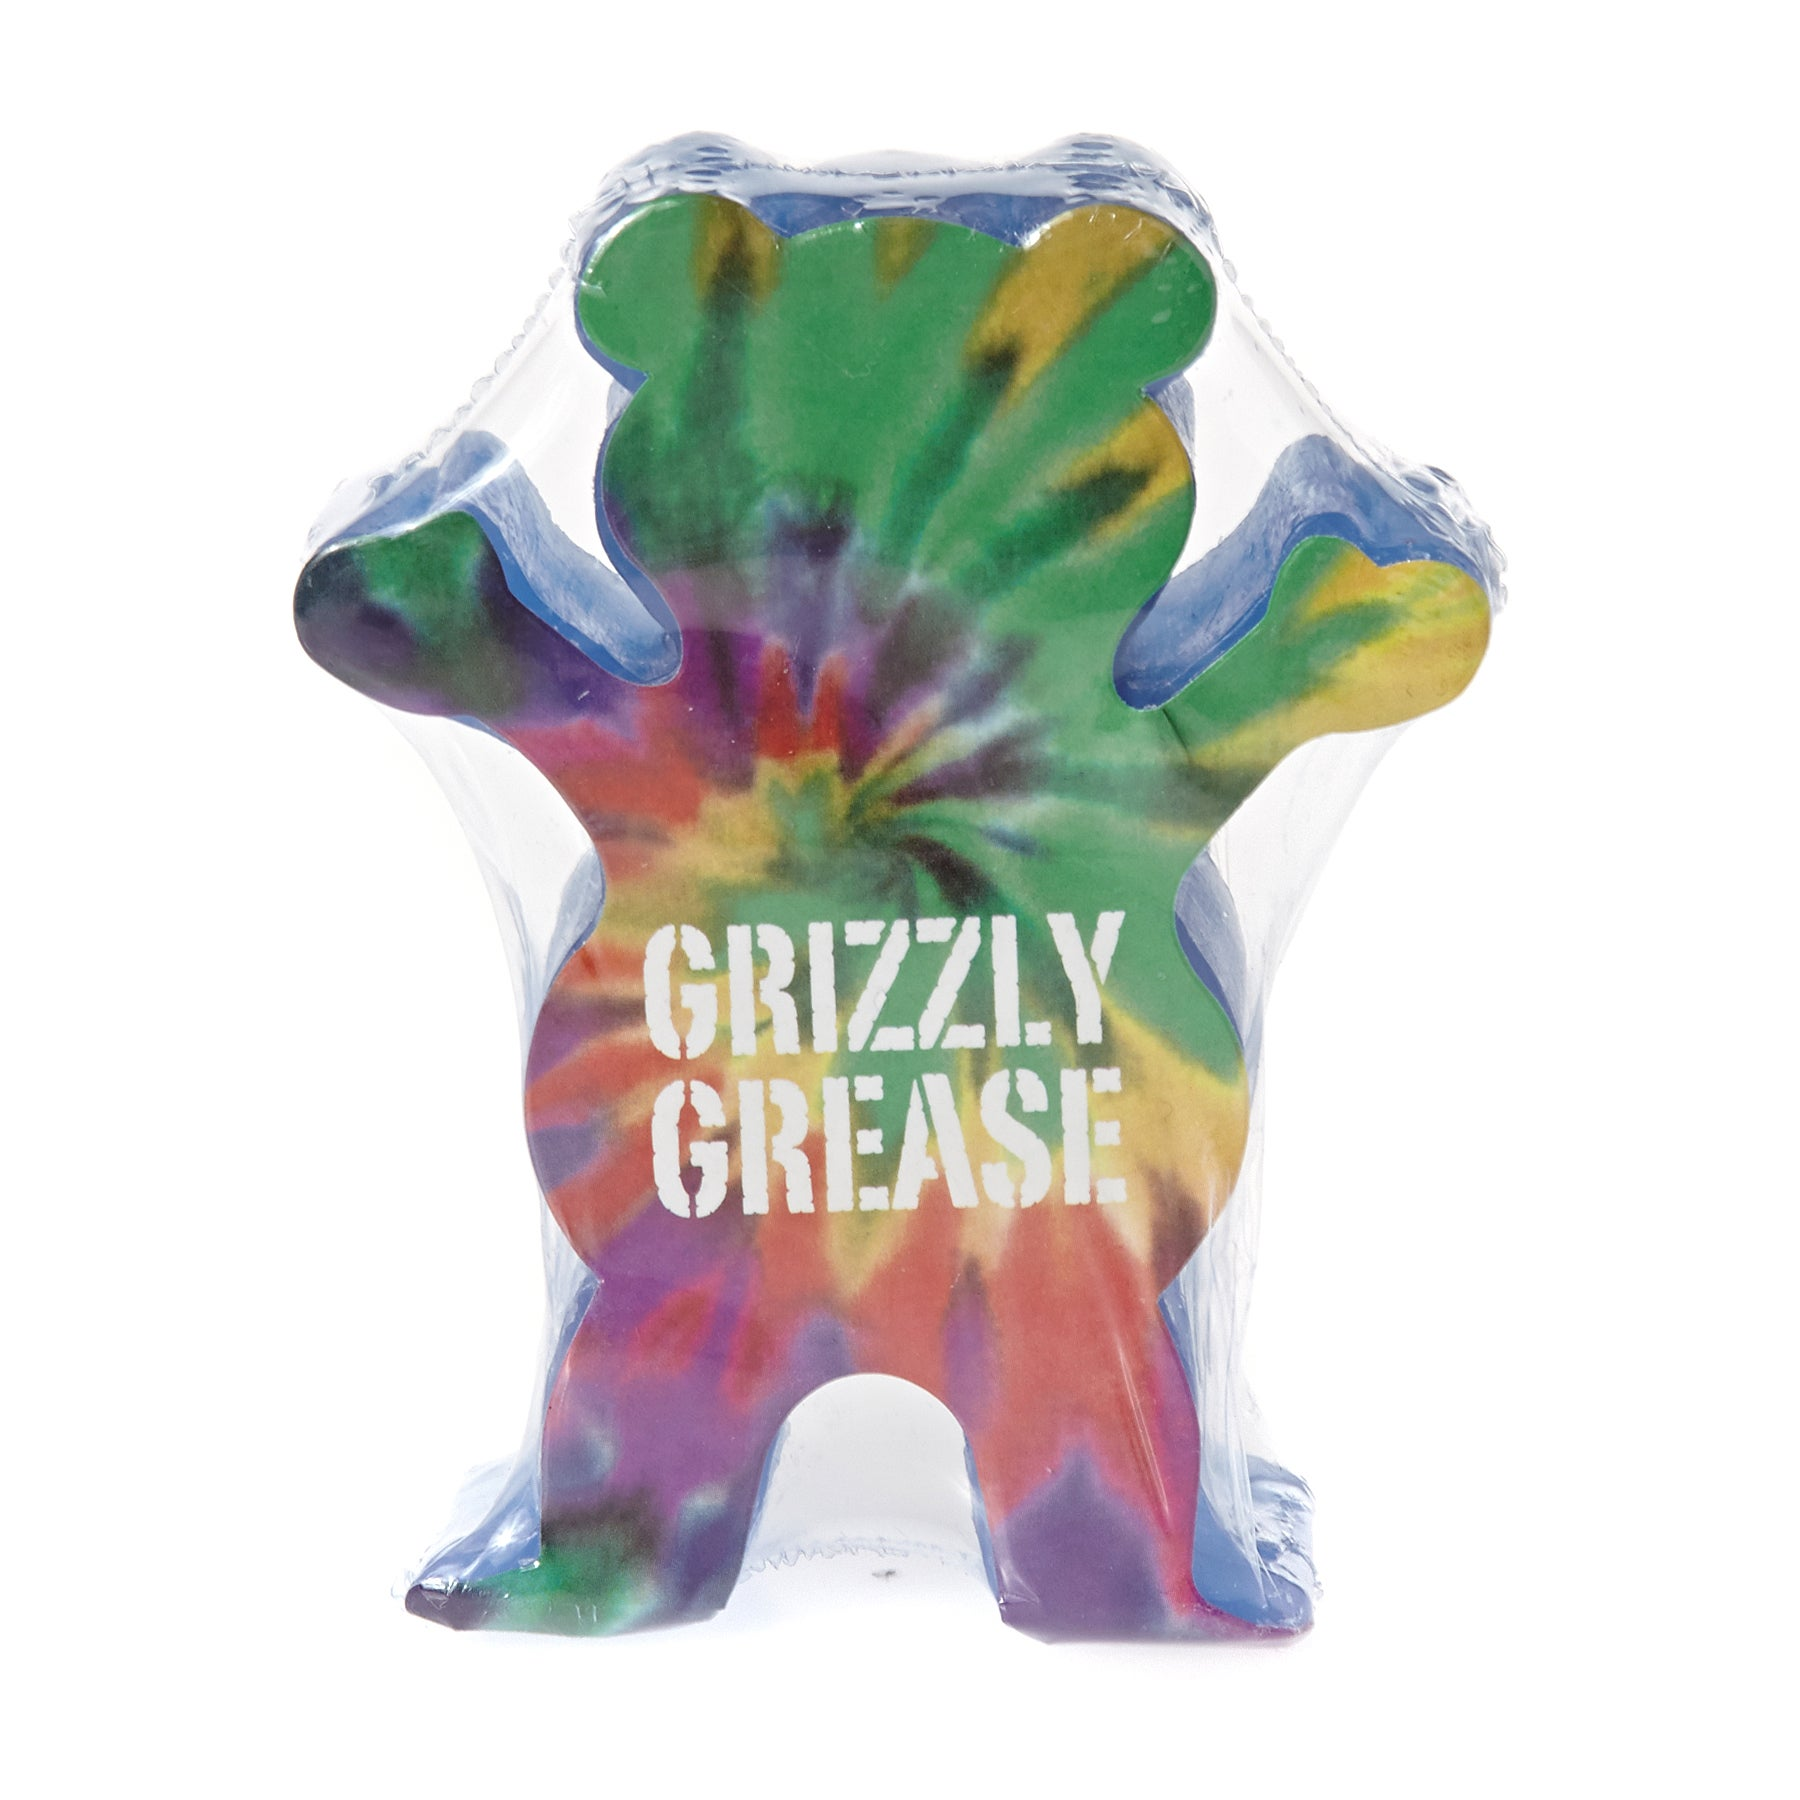 Grizzly Grease Skateboard Wax - Royal